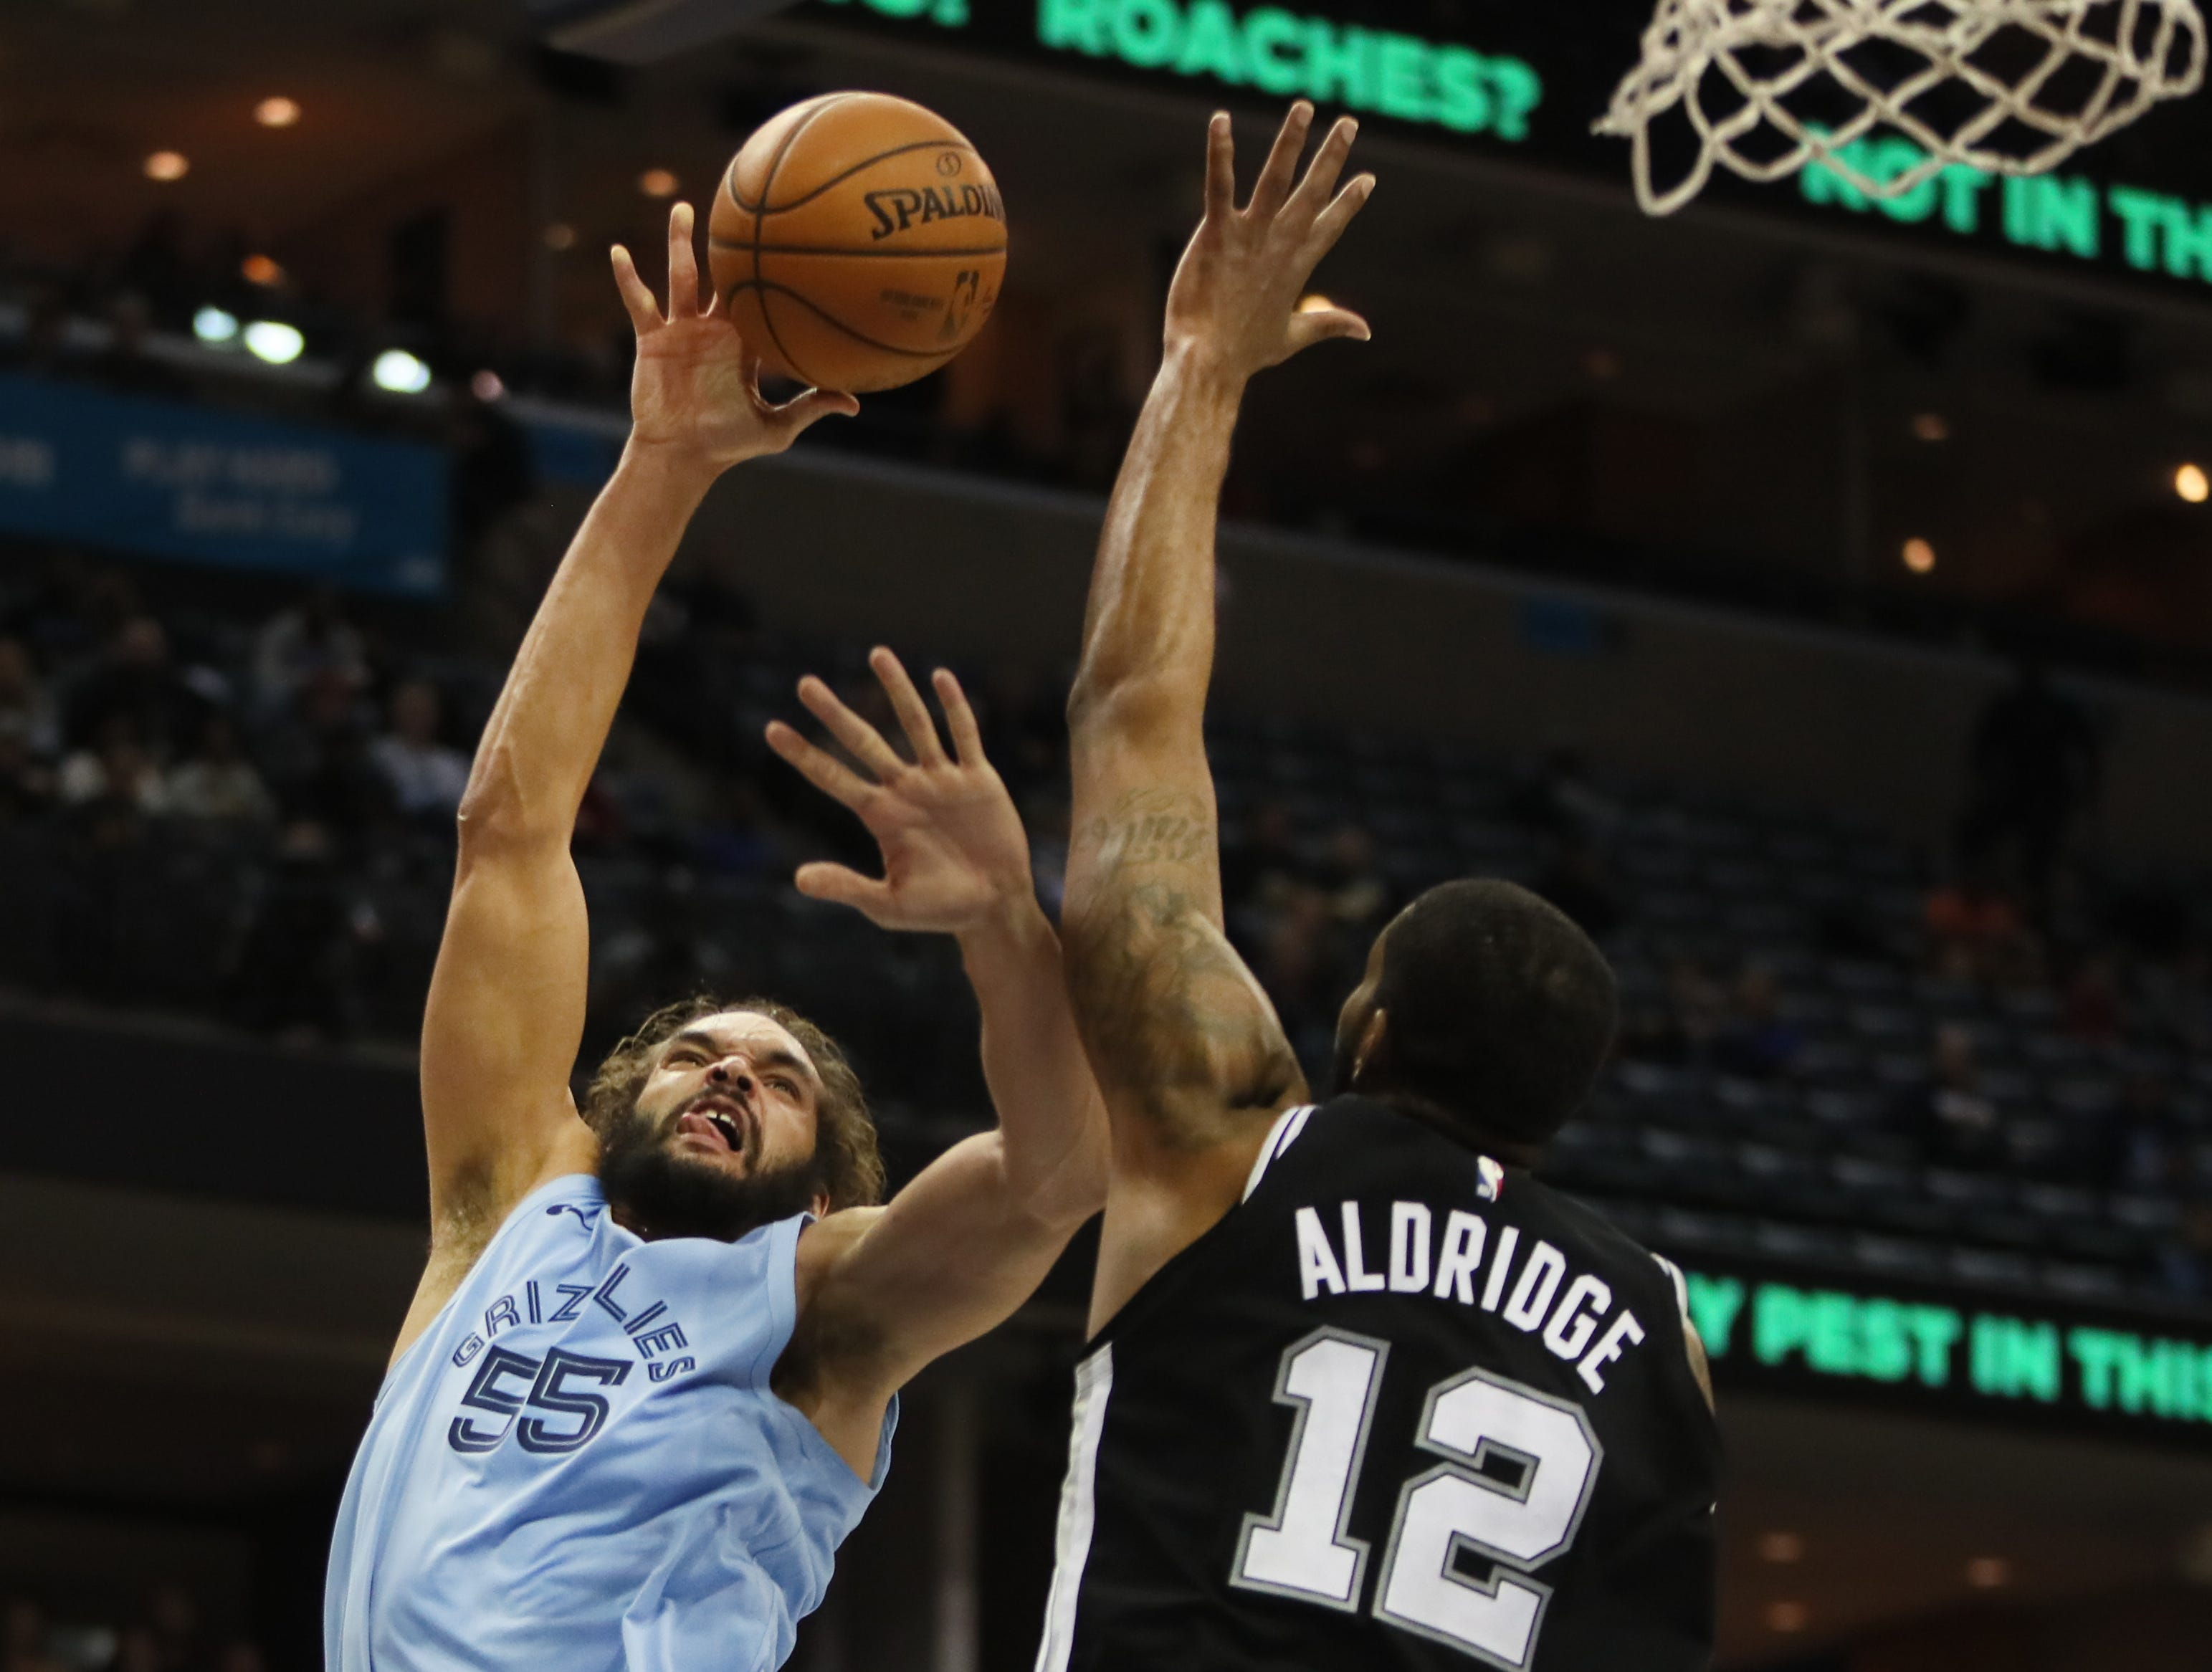 Memphis Grizzlies forward Joakim Noah shooots the ball over San Antonio Spurs center LaMarcus Aldridge during their game at the FedExForum on Tuesday, Feb. 12, 2019.